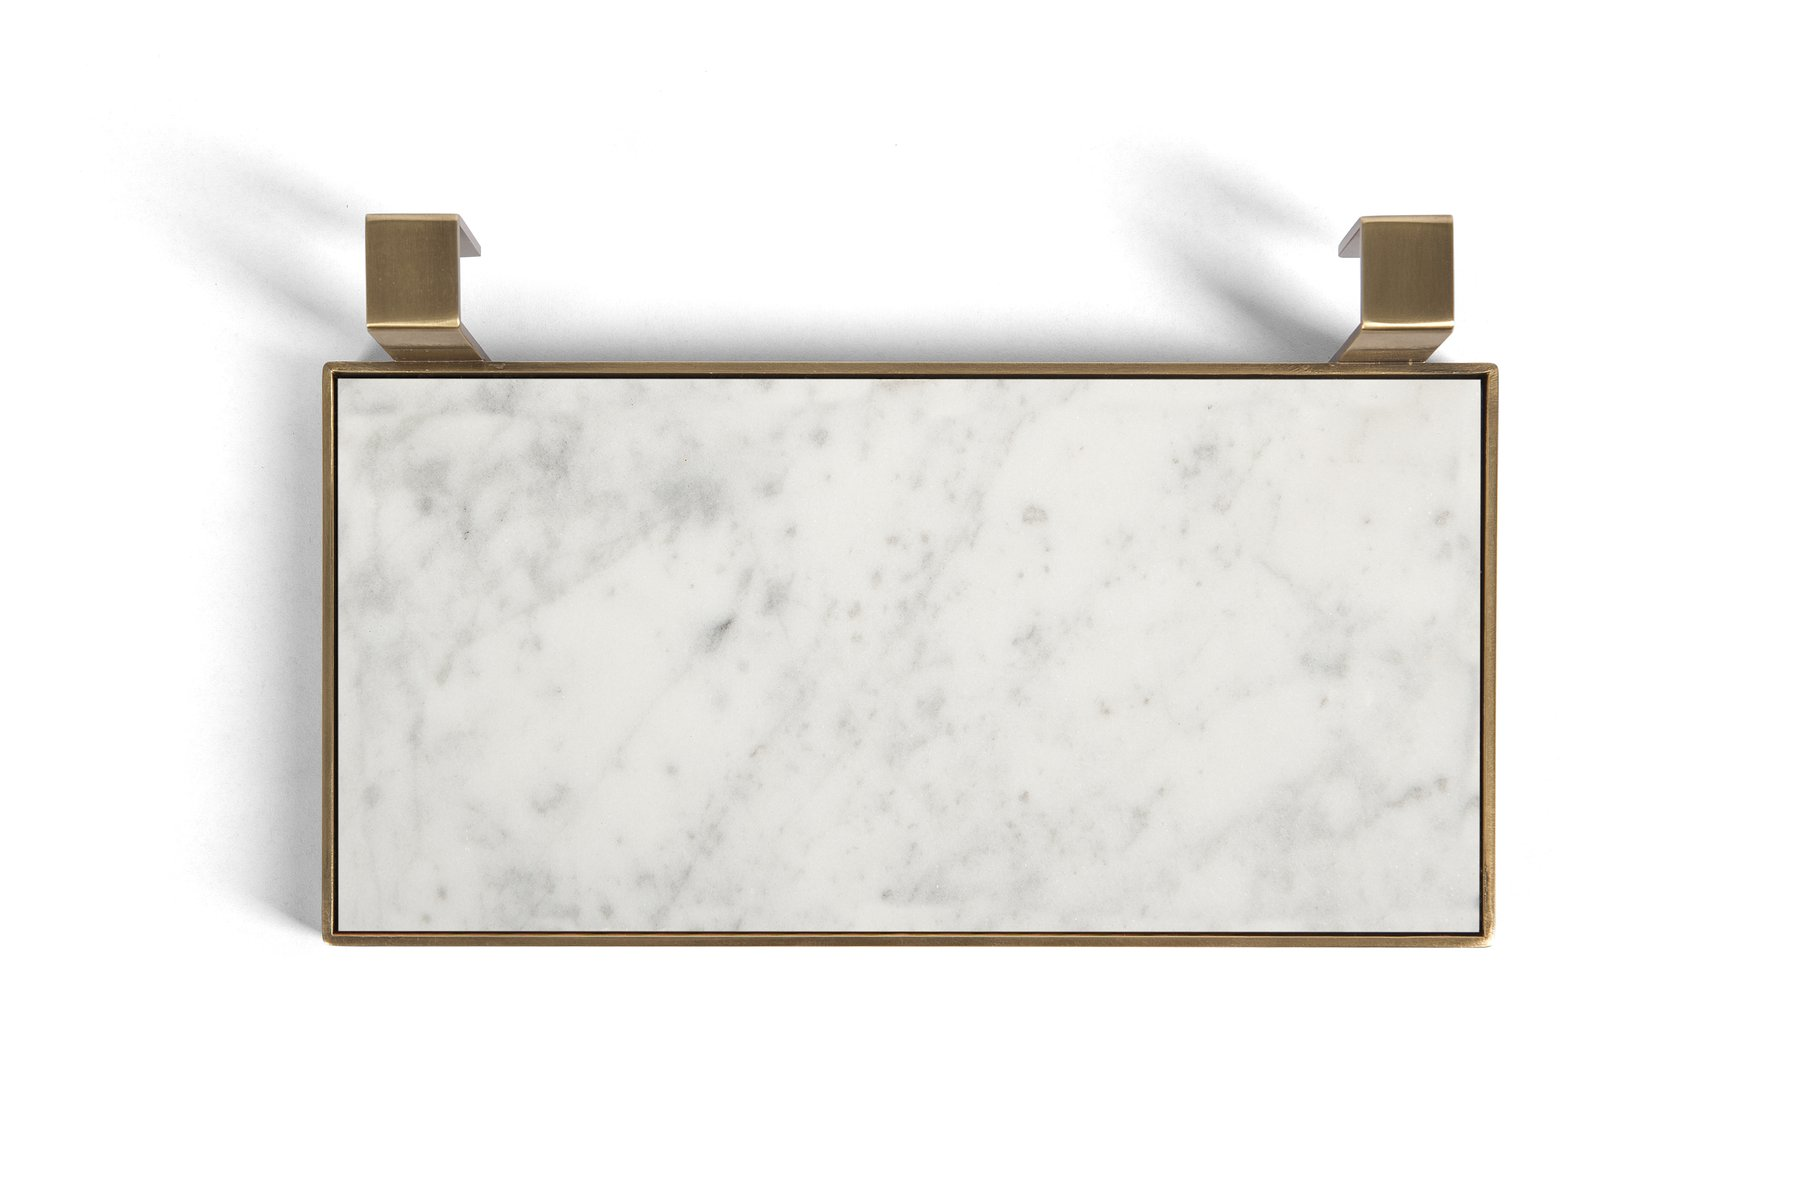 Tabl Eau Tray Soap Dish In Bianco Carrara Marble And Br By Silvia Fanticelli For Salvatori